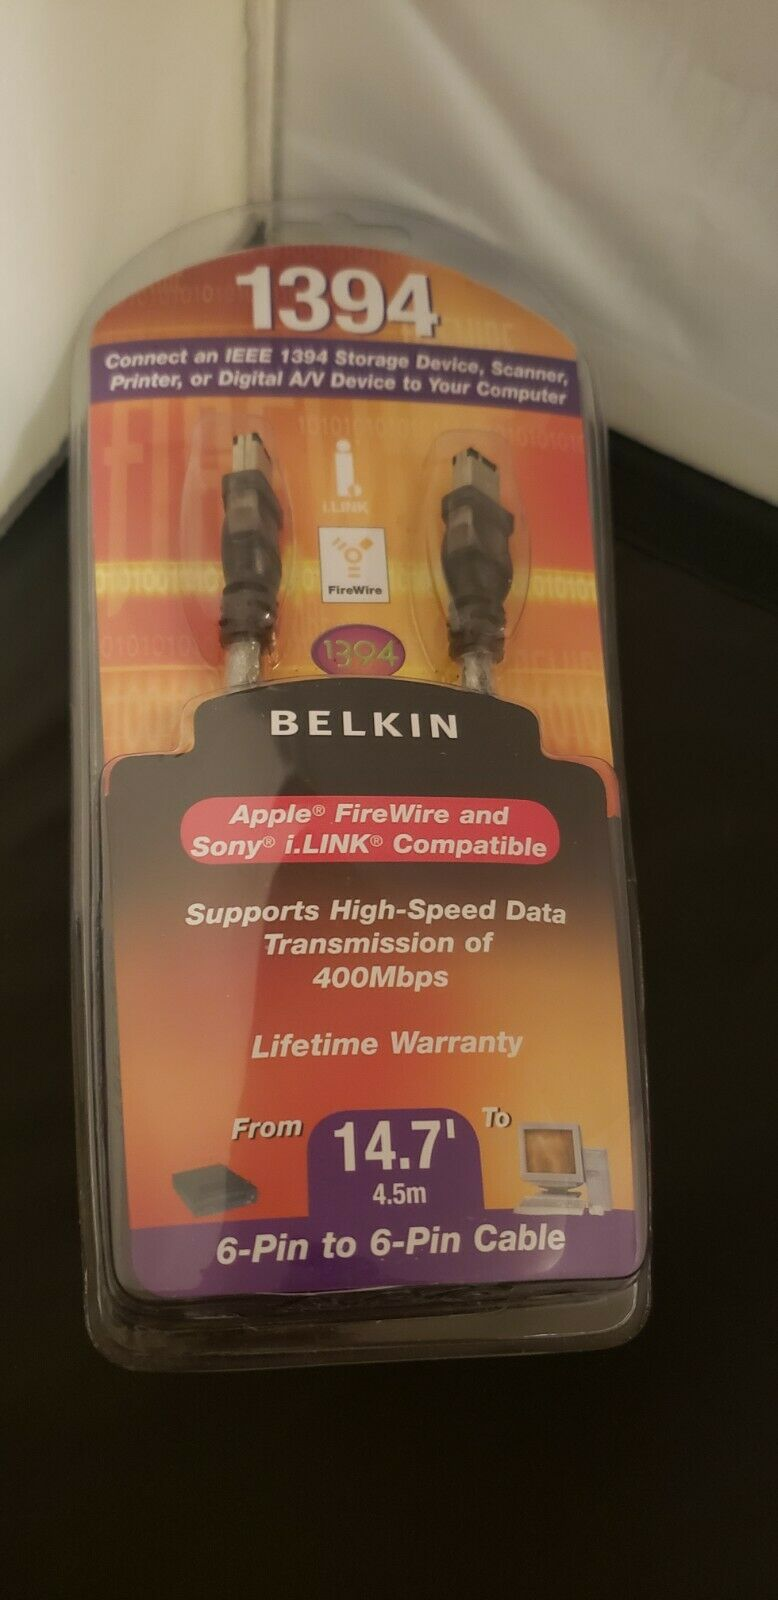 NEW Belkin 14.7' IEEE1394 FireWire / i.LINK 6-pin to 6-pin Cable